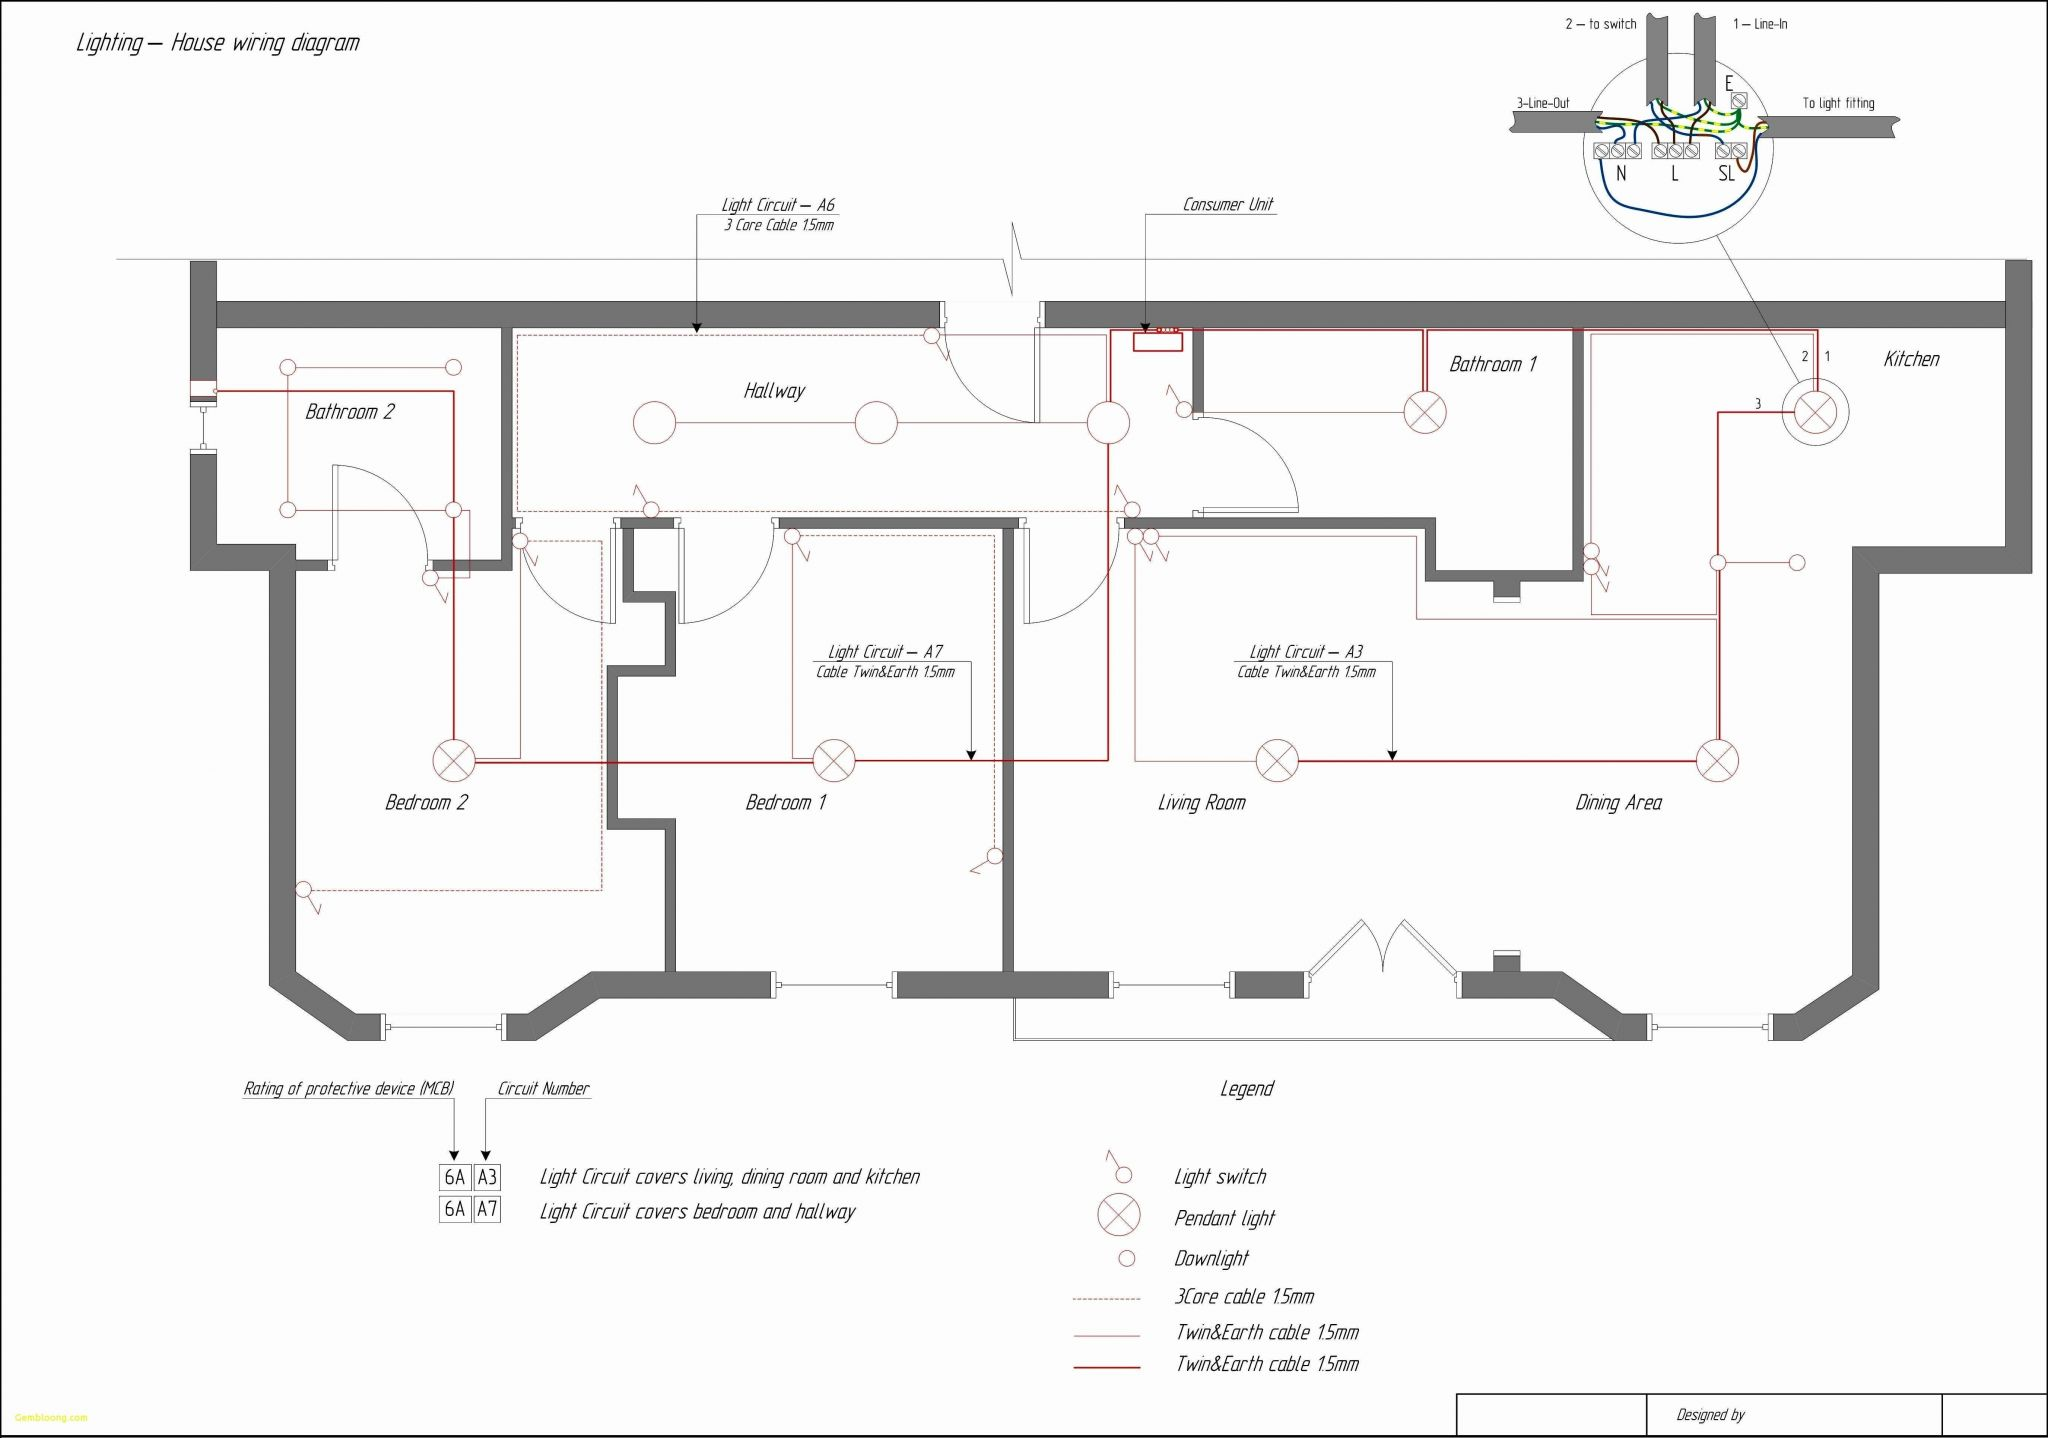 cable wiring diagram for business bf 1073  home phone line wiring schematic wiring  home phone line wiring schematic wiring